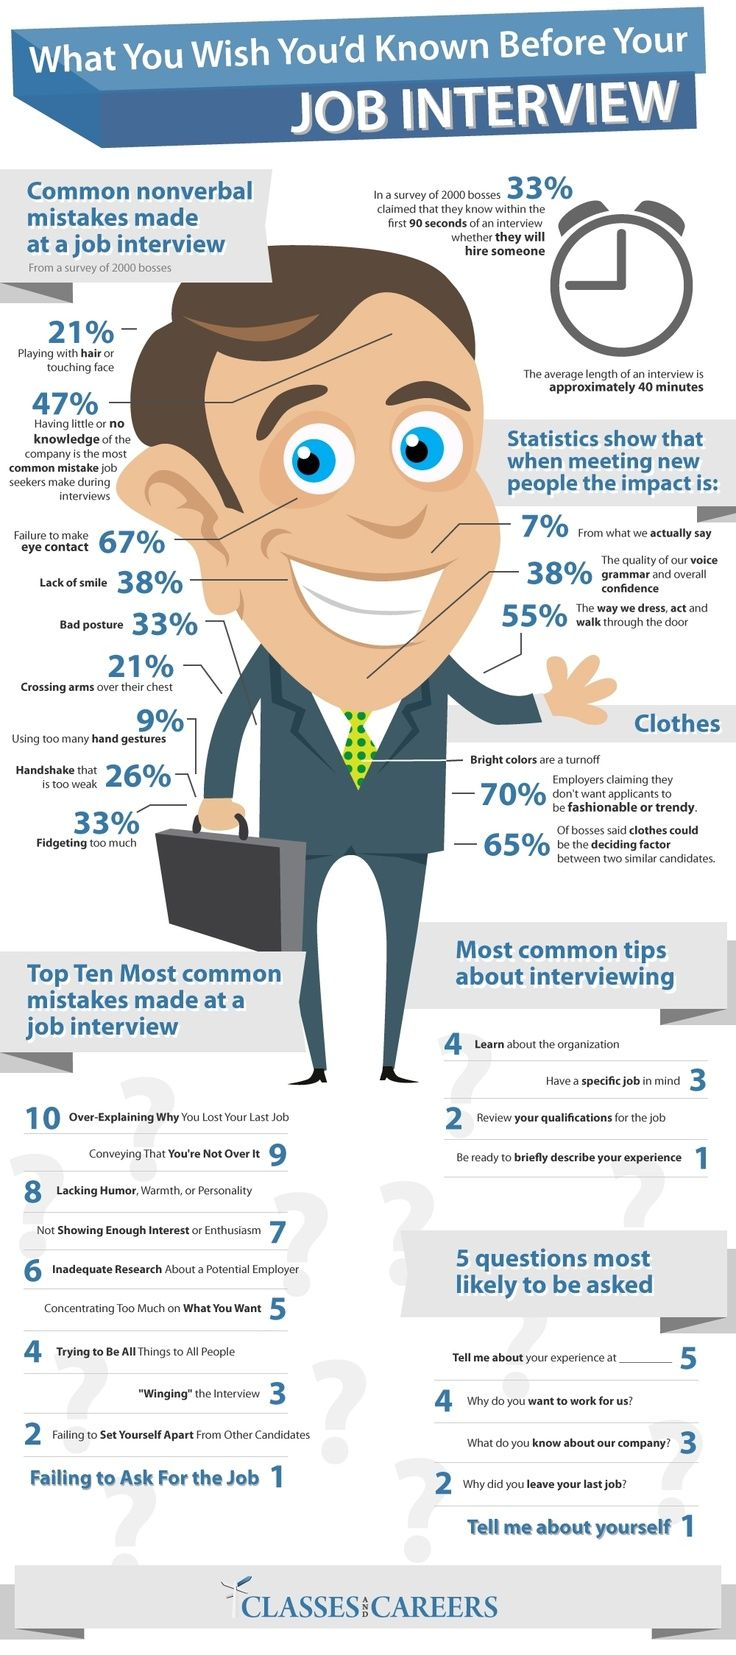 What you wish you'd known before your job interview www.upgrow.com